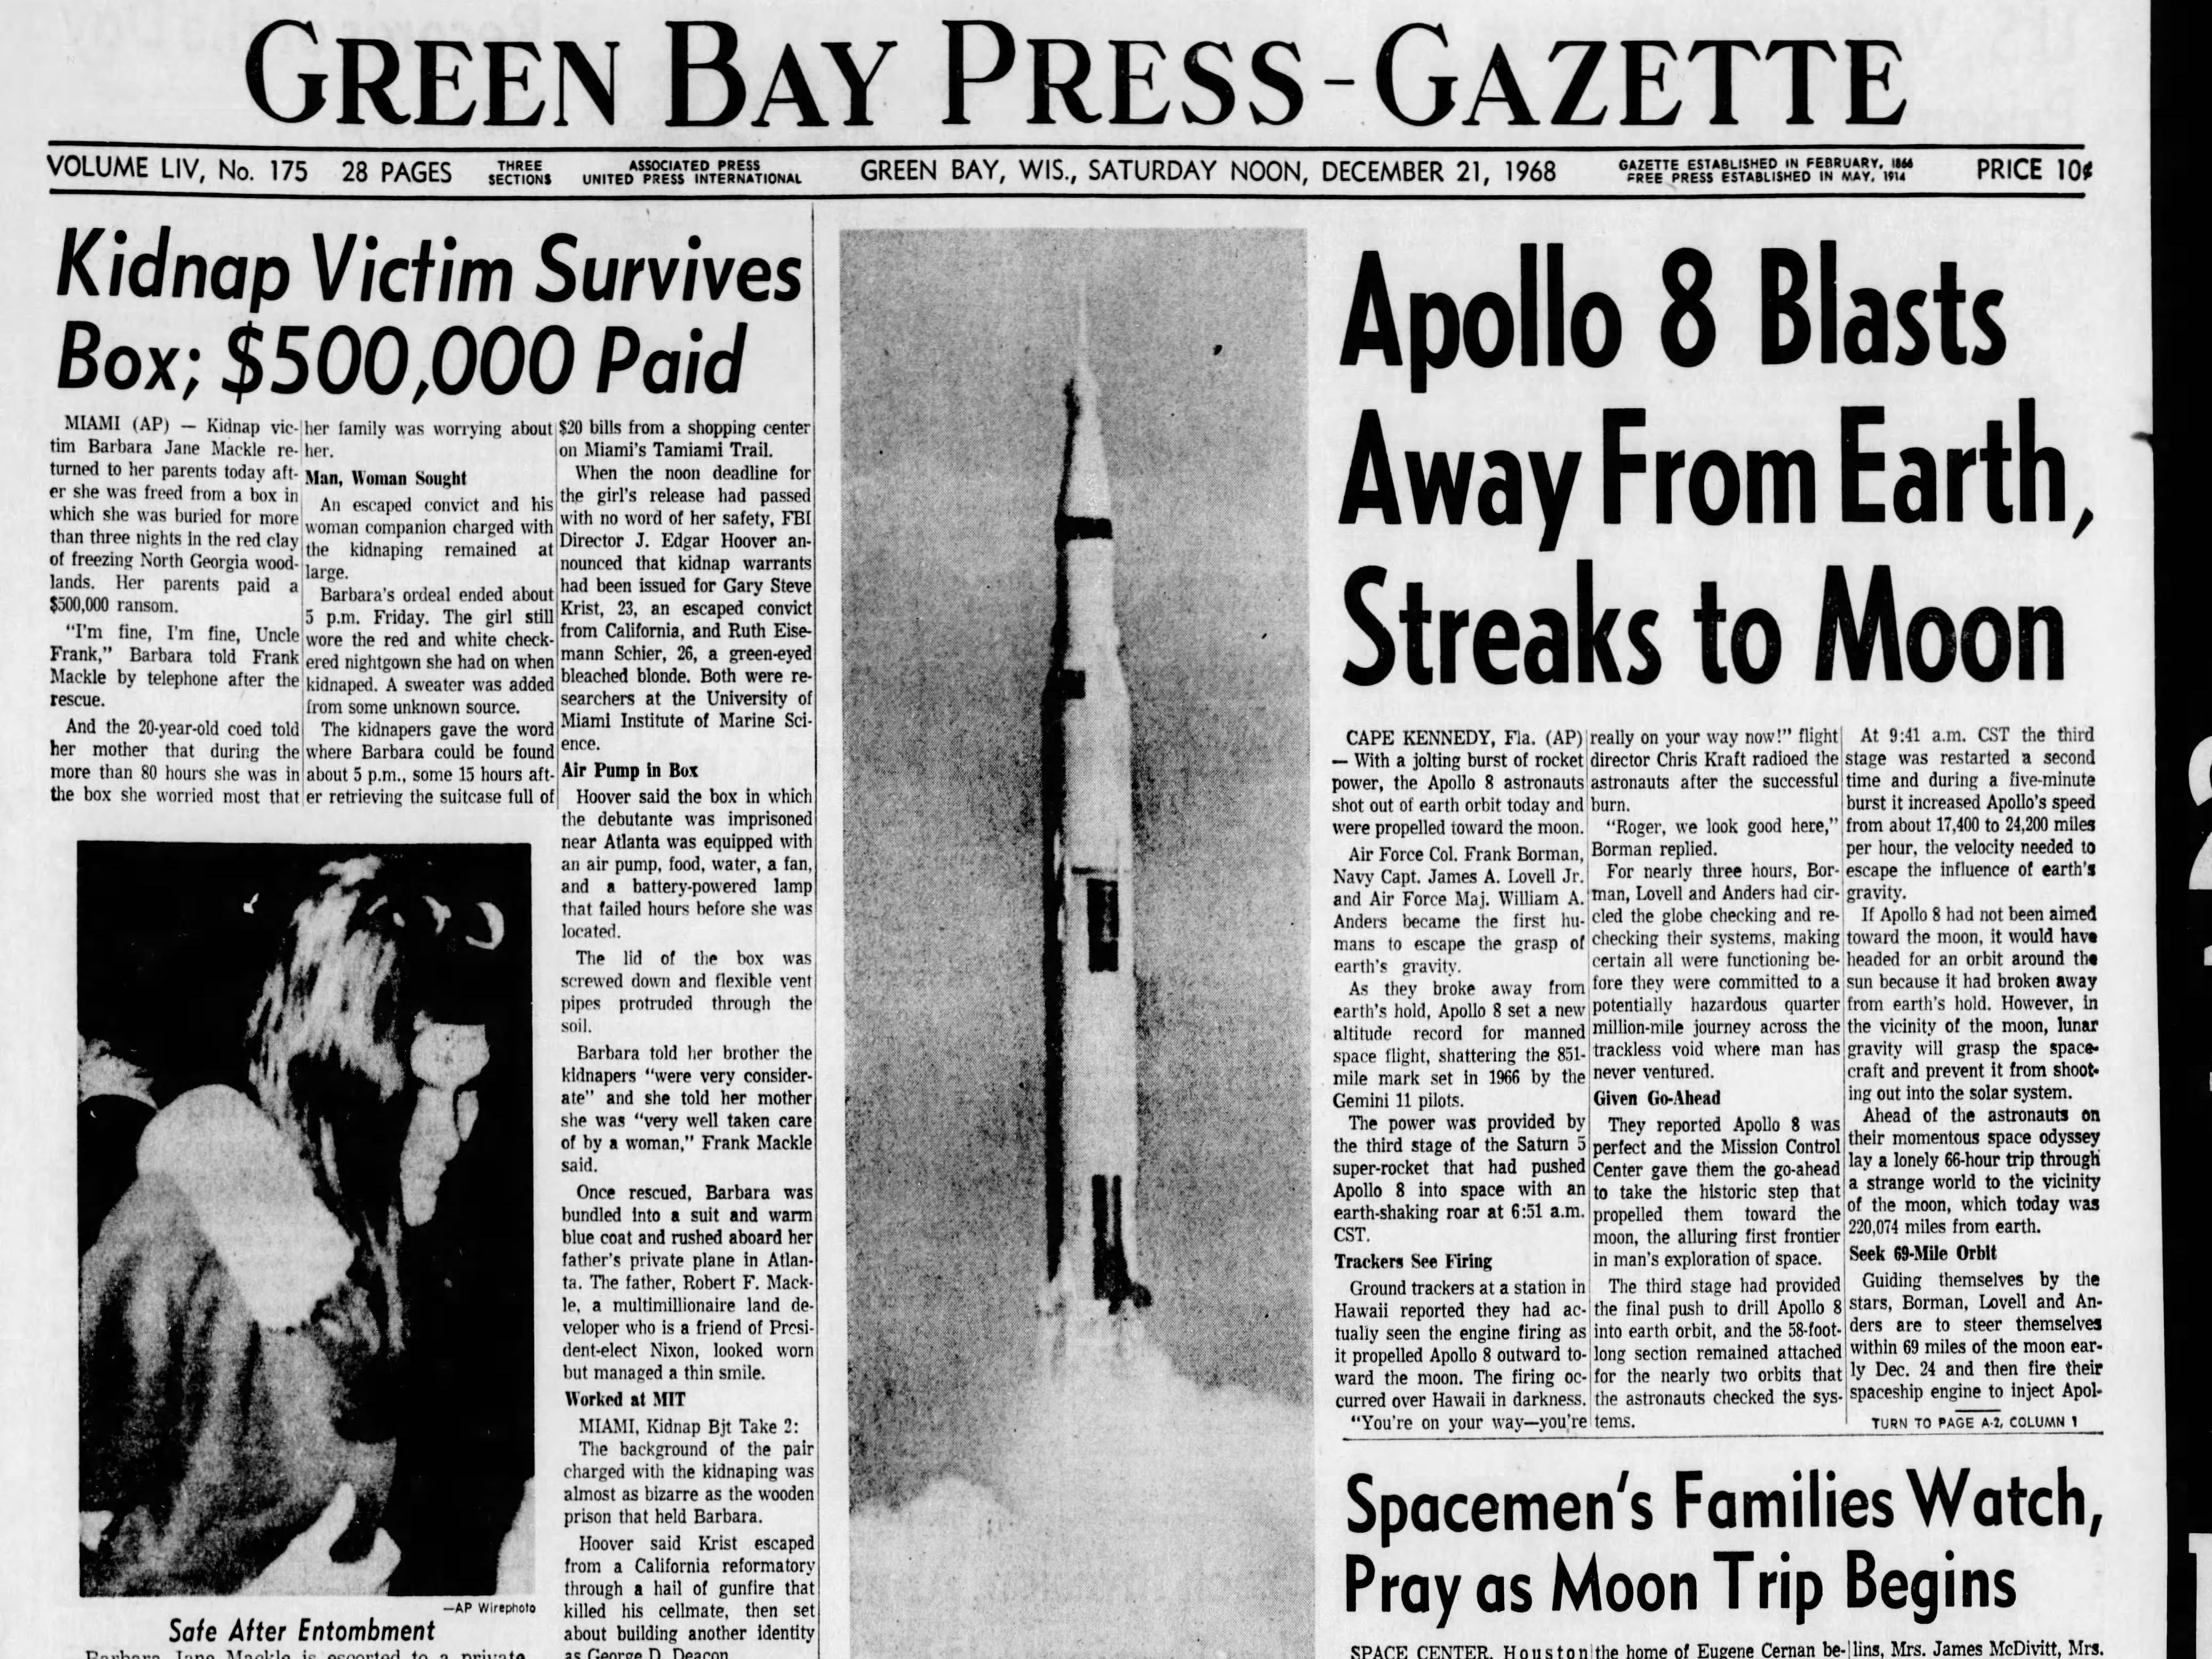 Today in History: Dec. 21, 1968